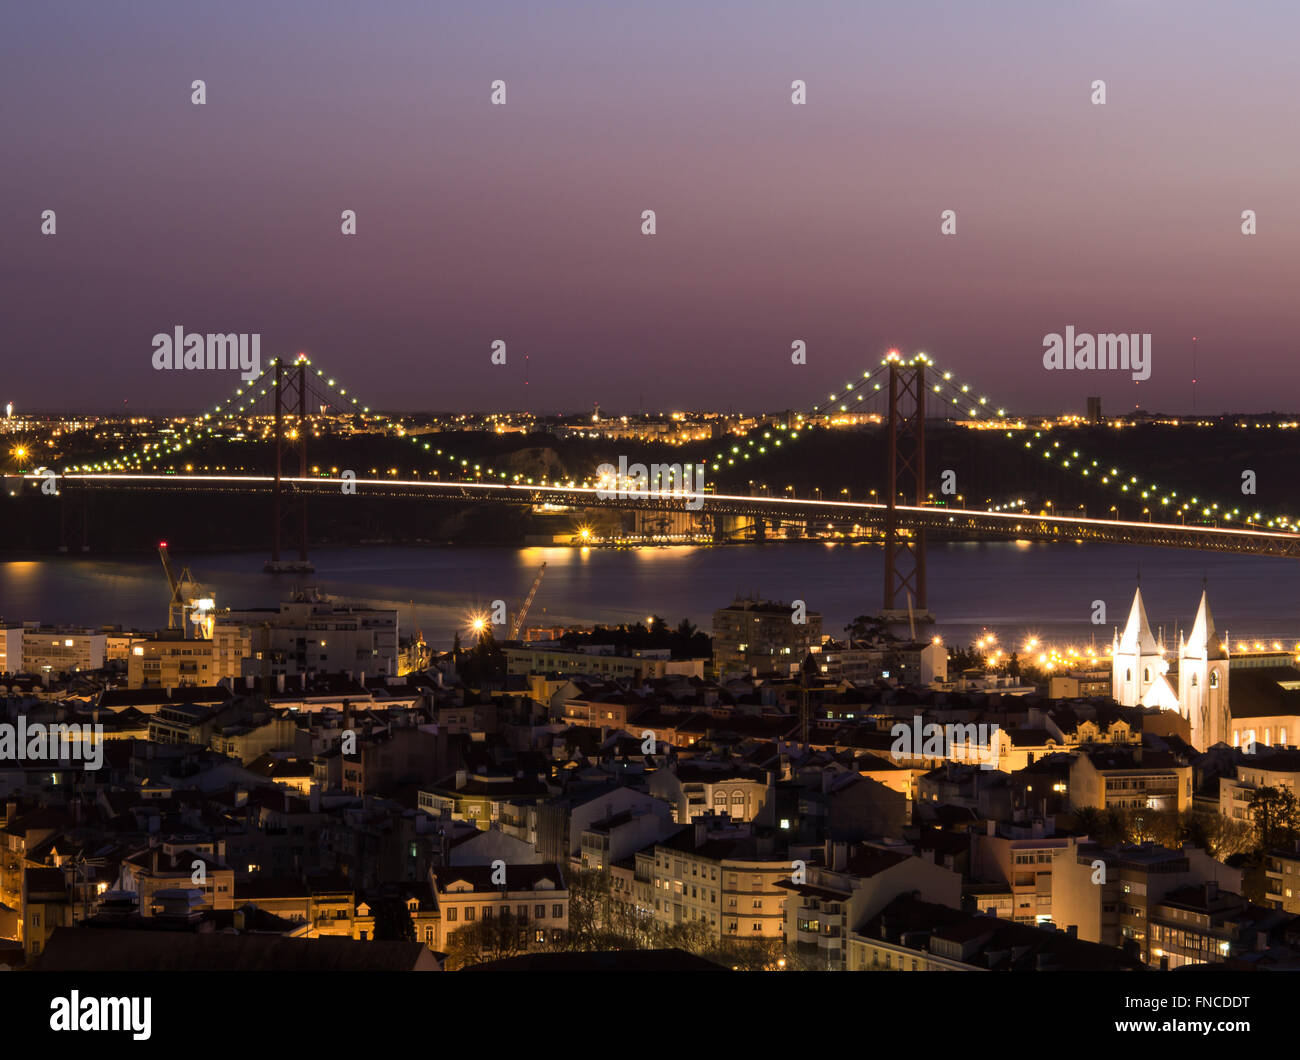 Ponte 25 de Abril at night view, Lisbon, Portugal Stock Photo